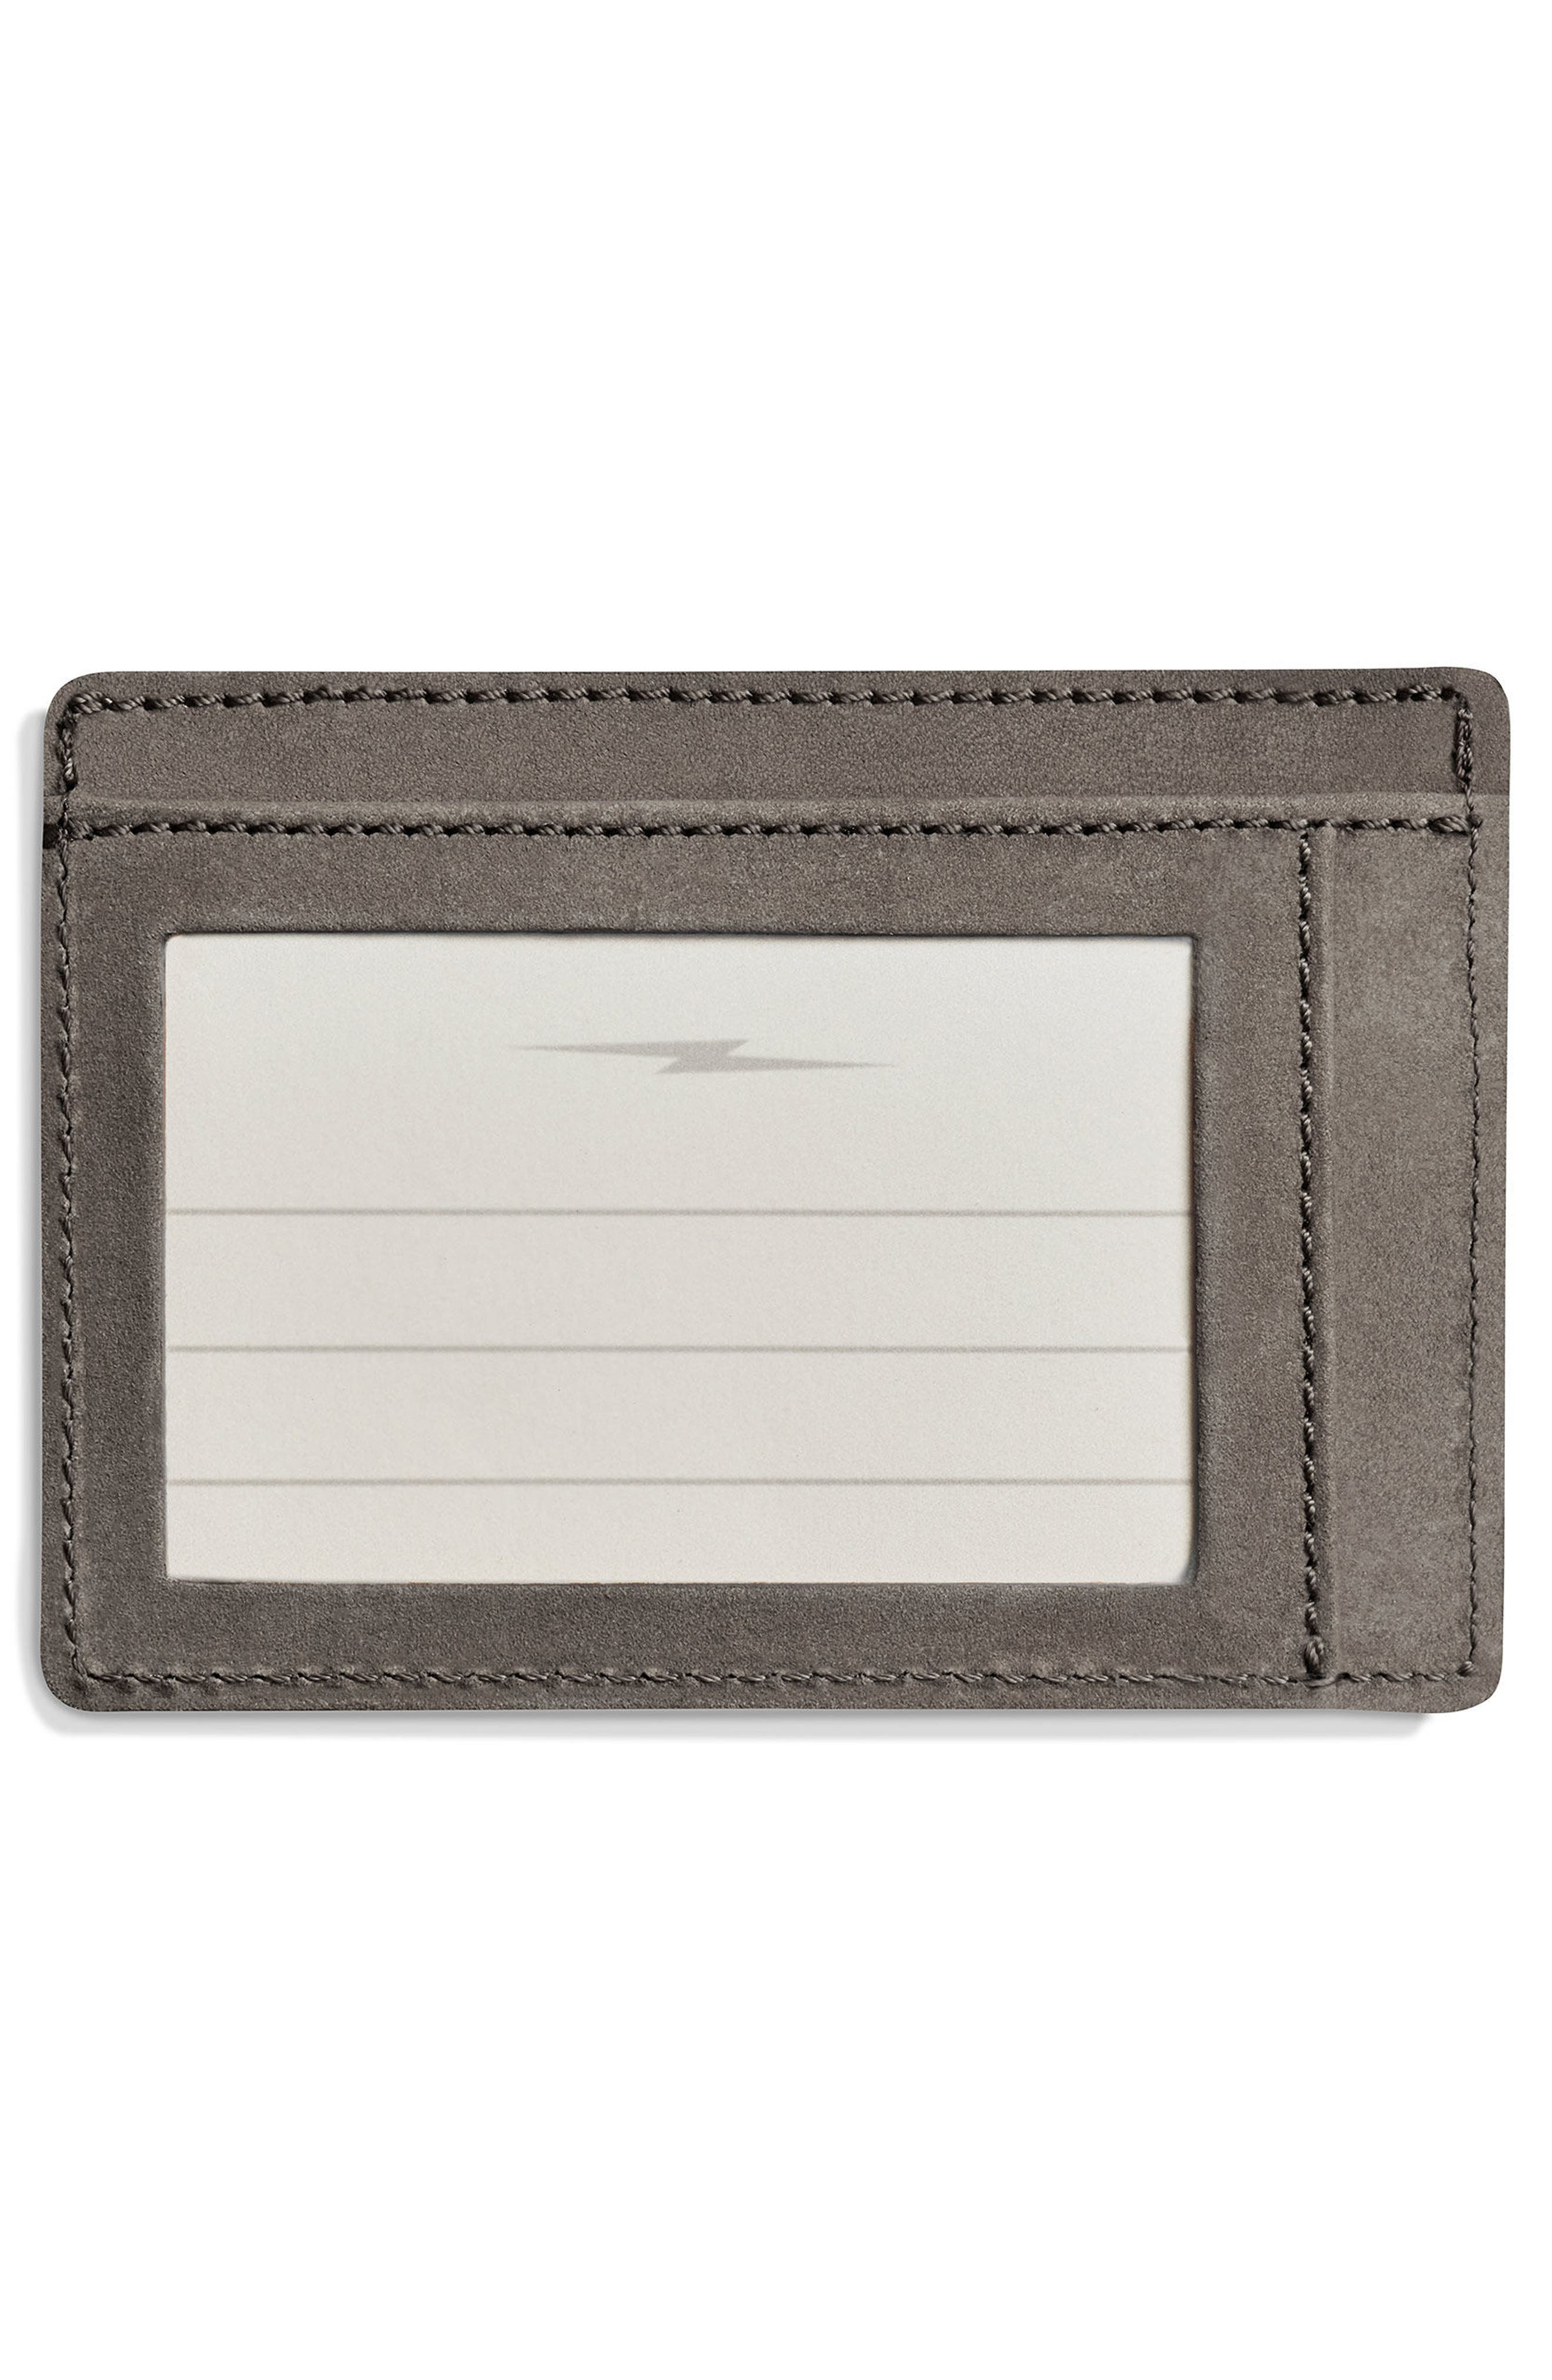 SHINOLA,                             Outrigger ID Leather Card Case,                             Alternate thumbnail 2, color,                             020